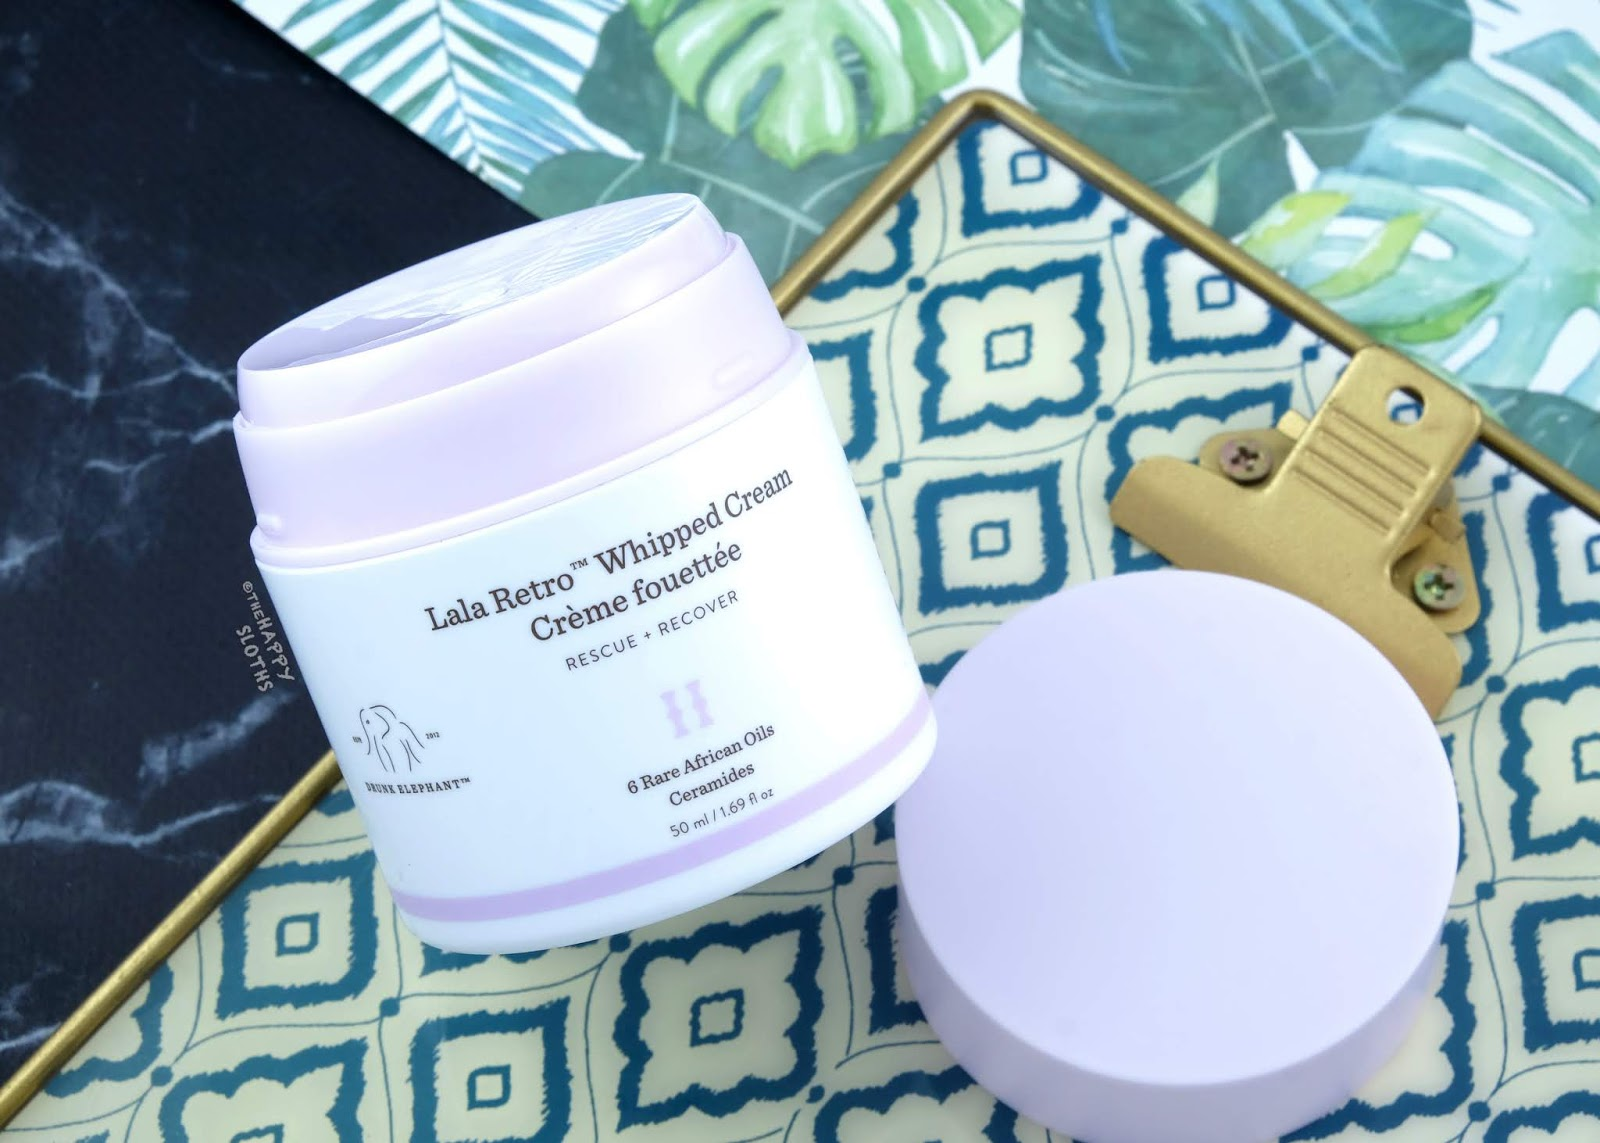 Drunk Elephant | Lala Retro Whipped Moisturizer with Ceramides: Review